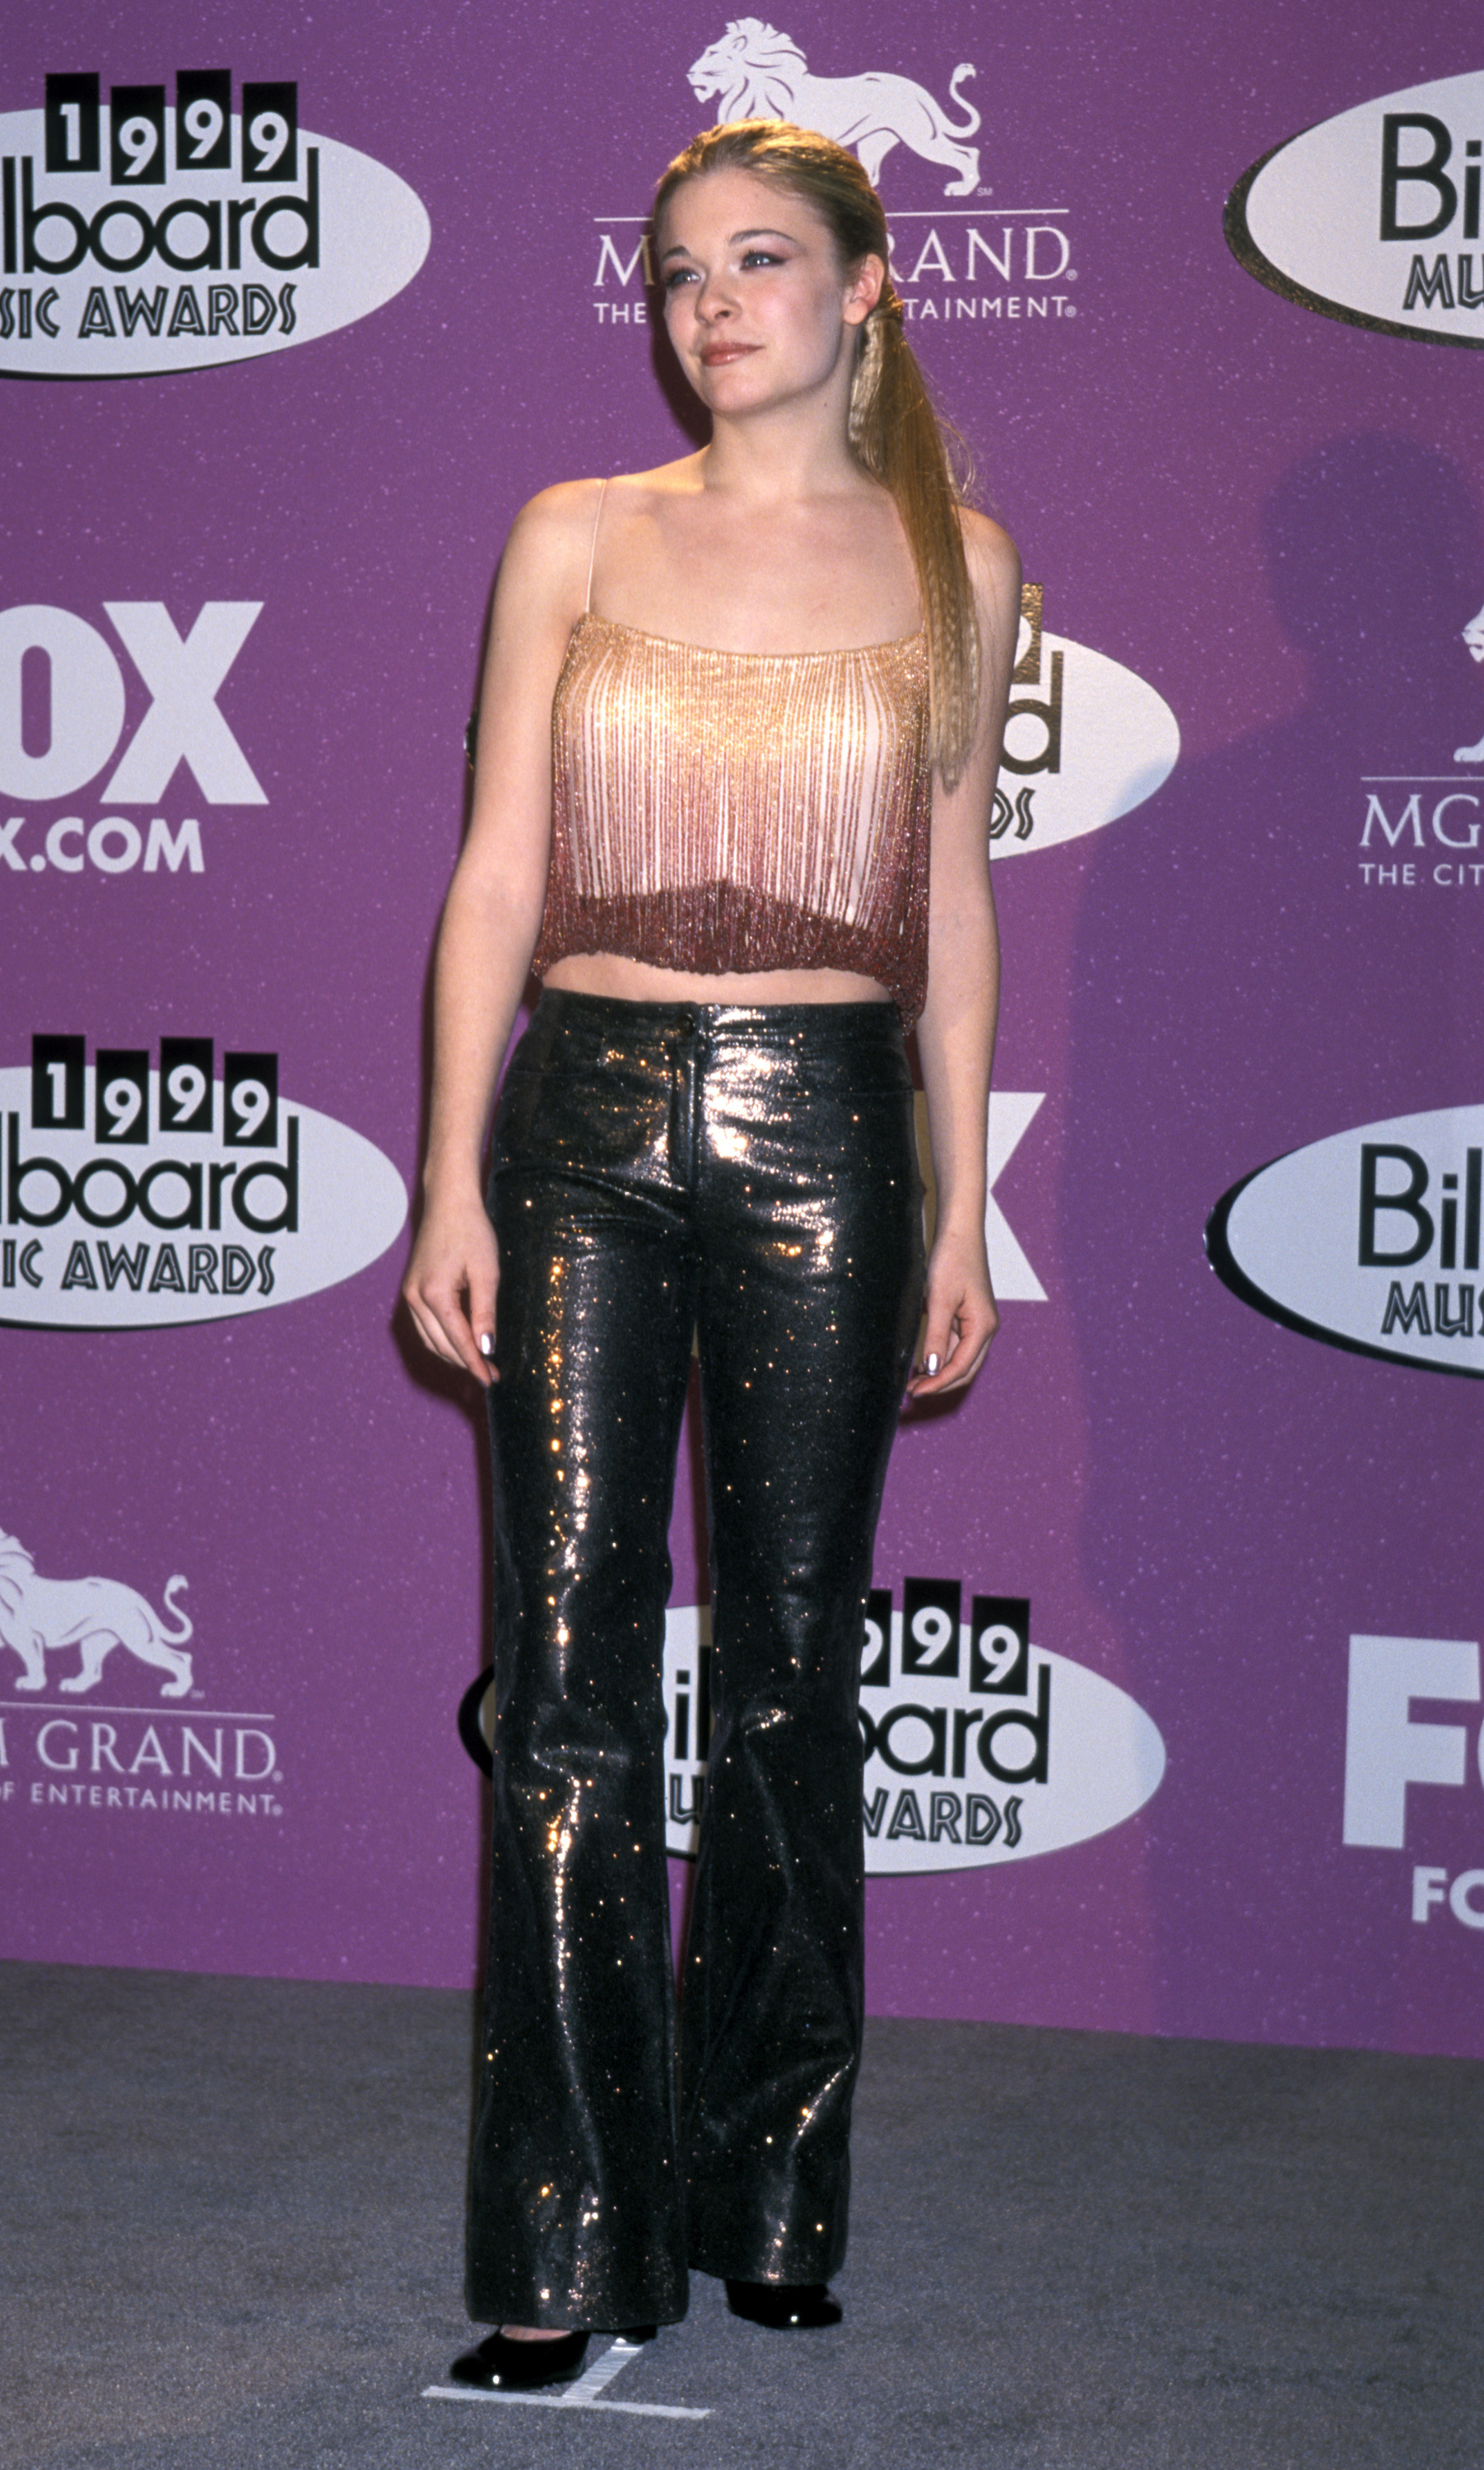 LeAnn Rimes is pictured at the 10th Annual Billboard Music Awards at MGM Grand Hotel in Las Vegas, Nevada on Dec. 8, 1999.